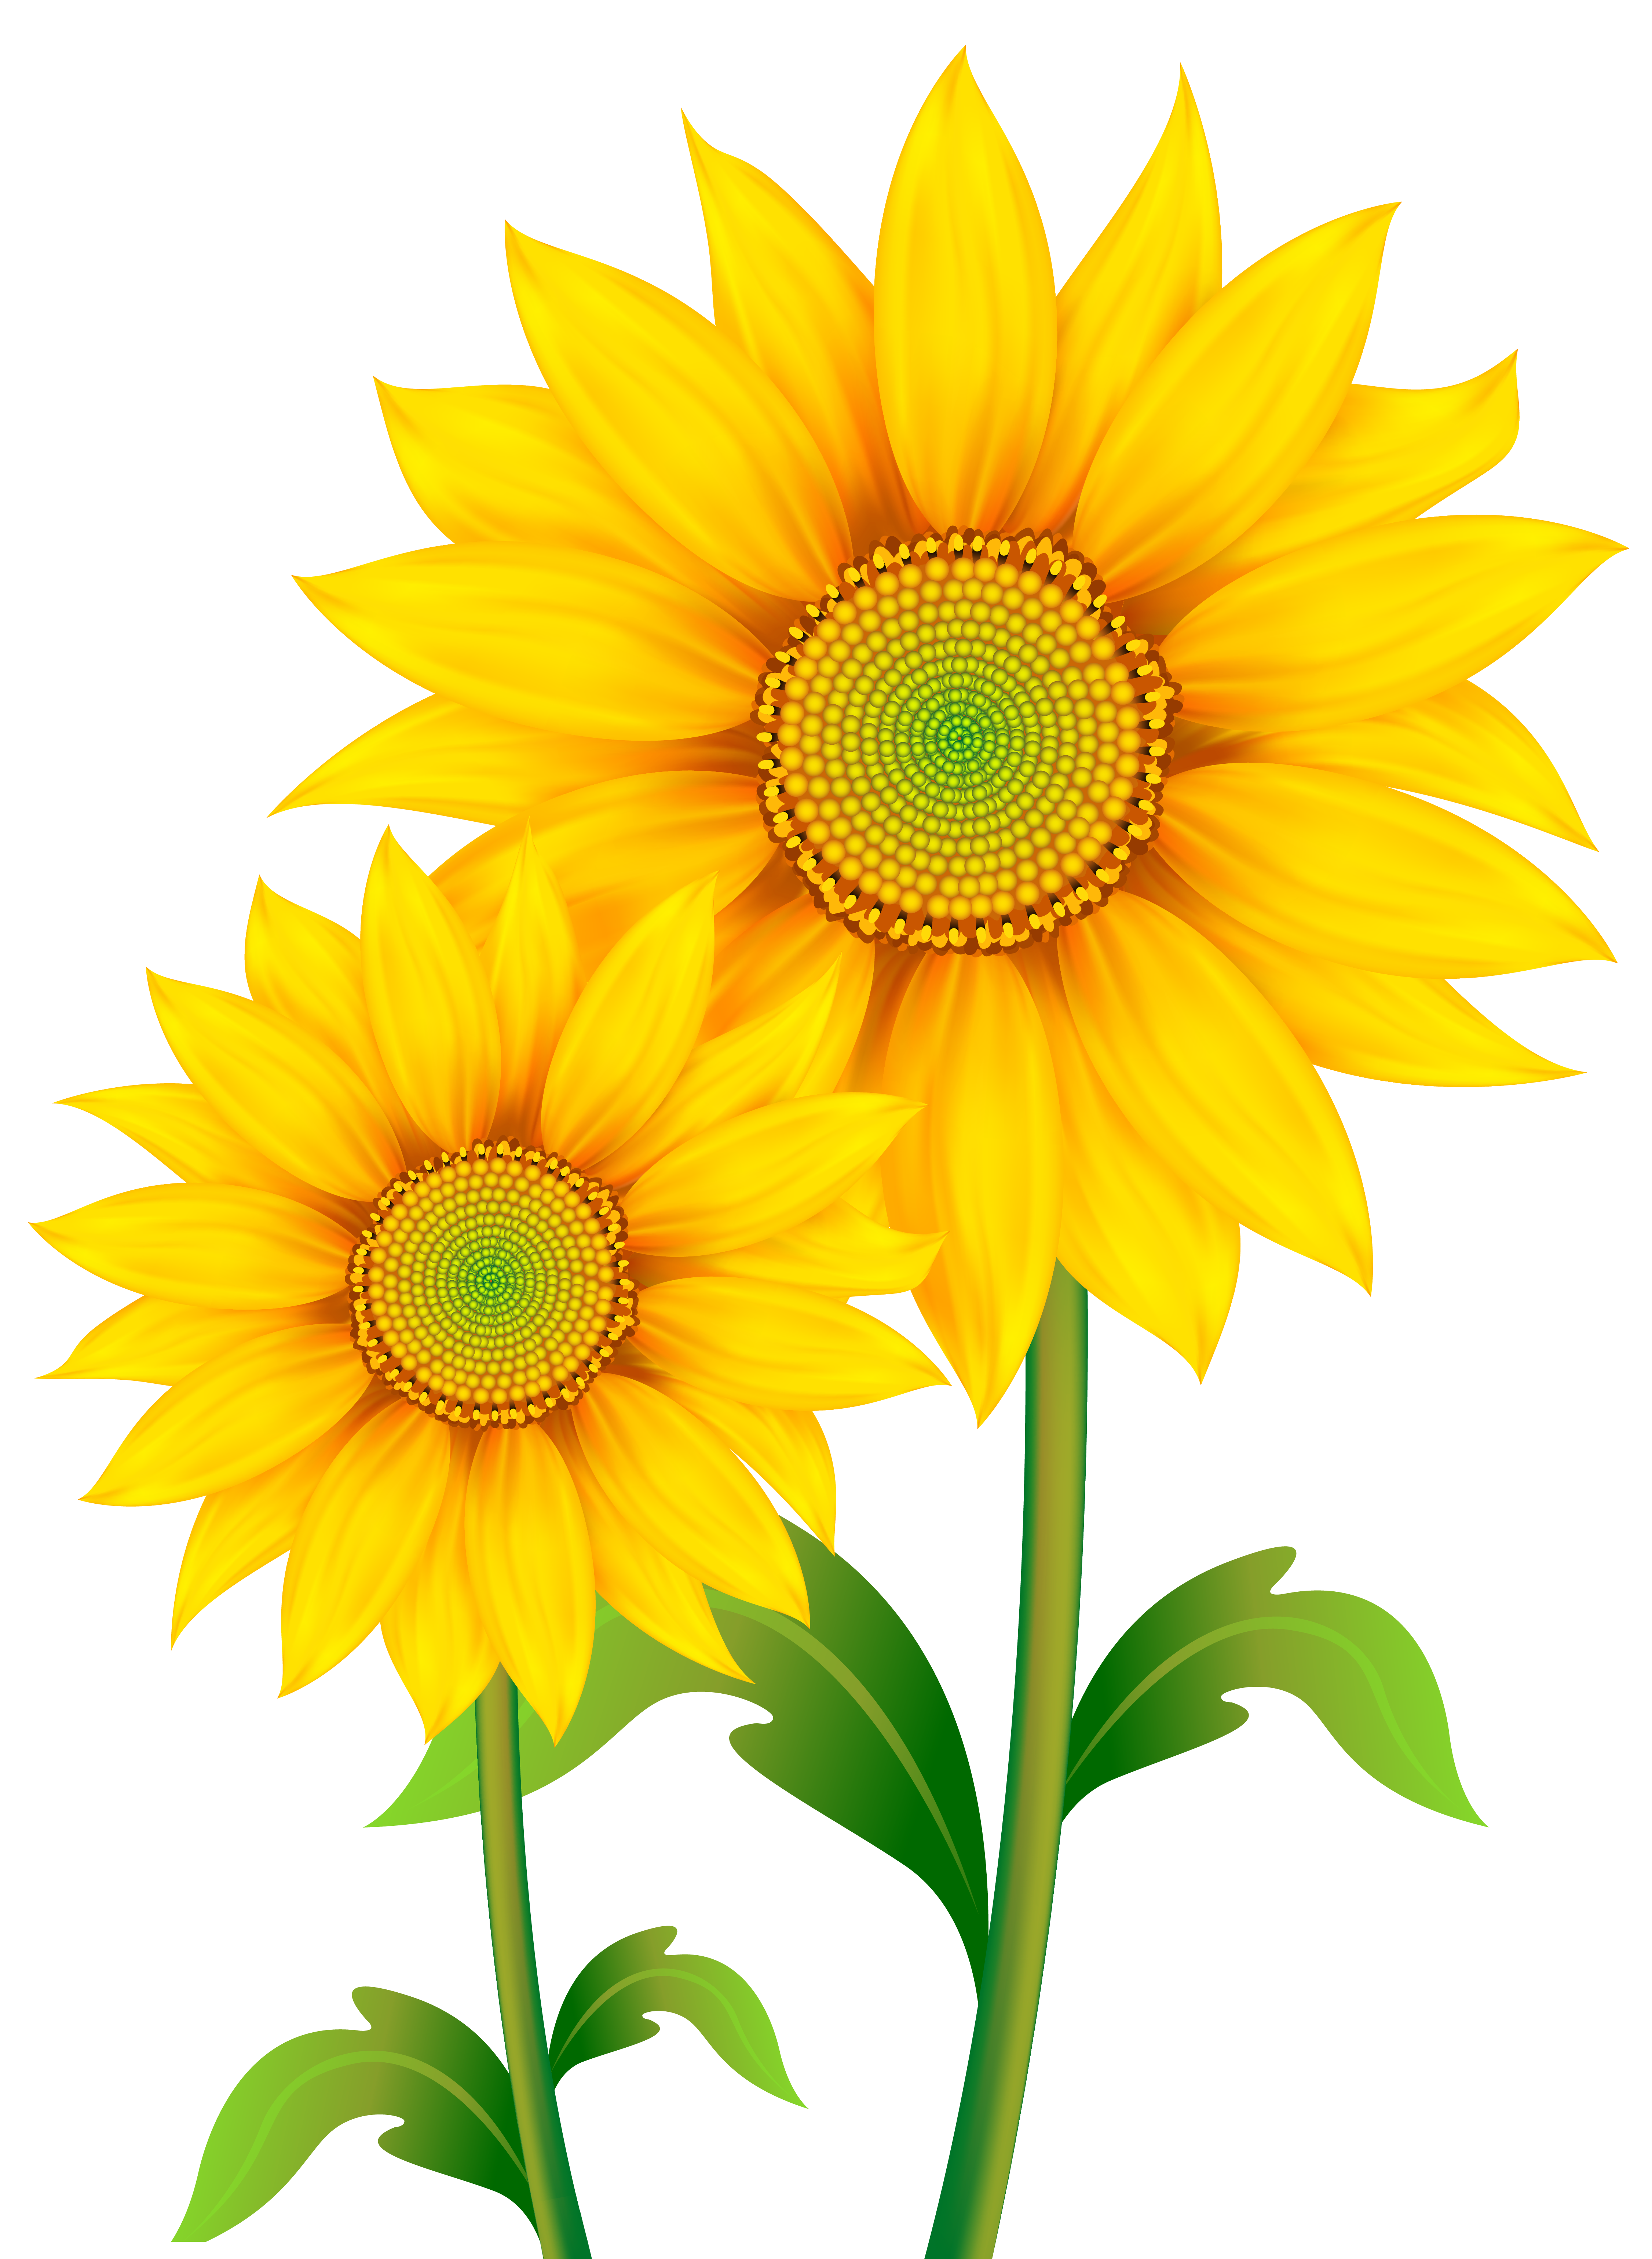 Transparent sunflowers clipart.